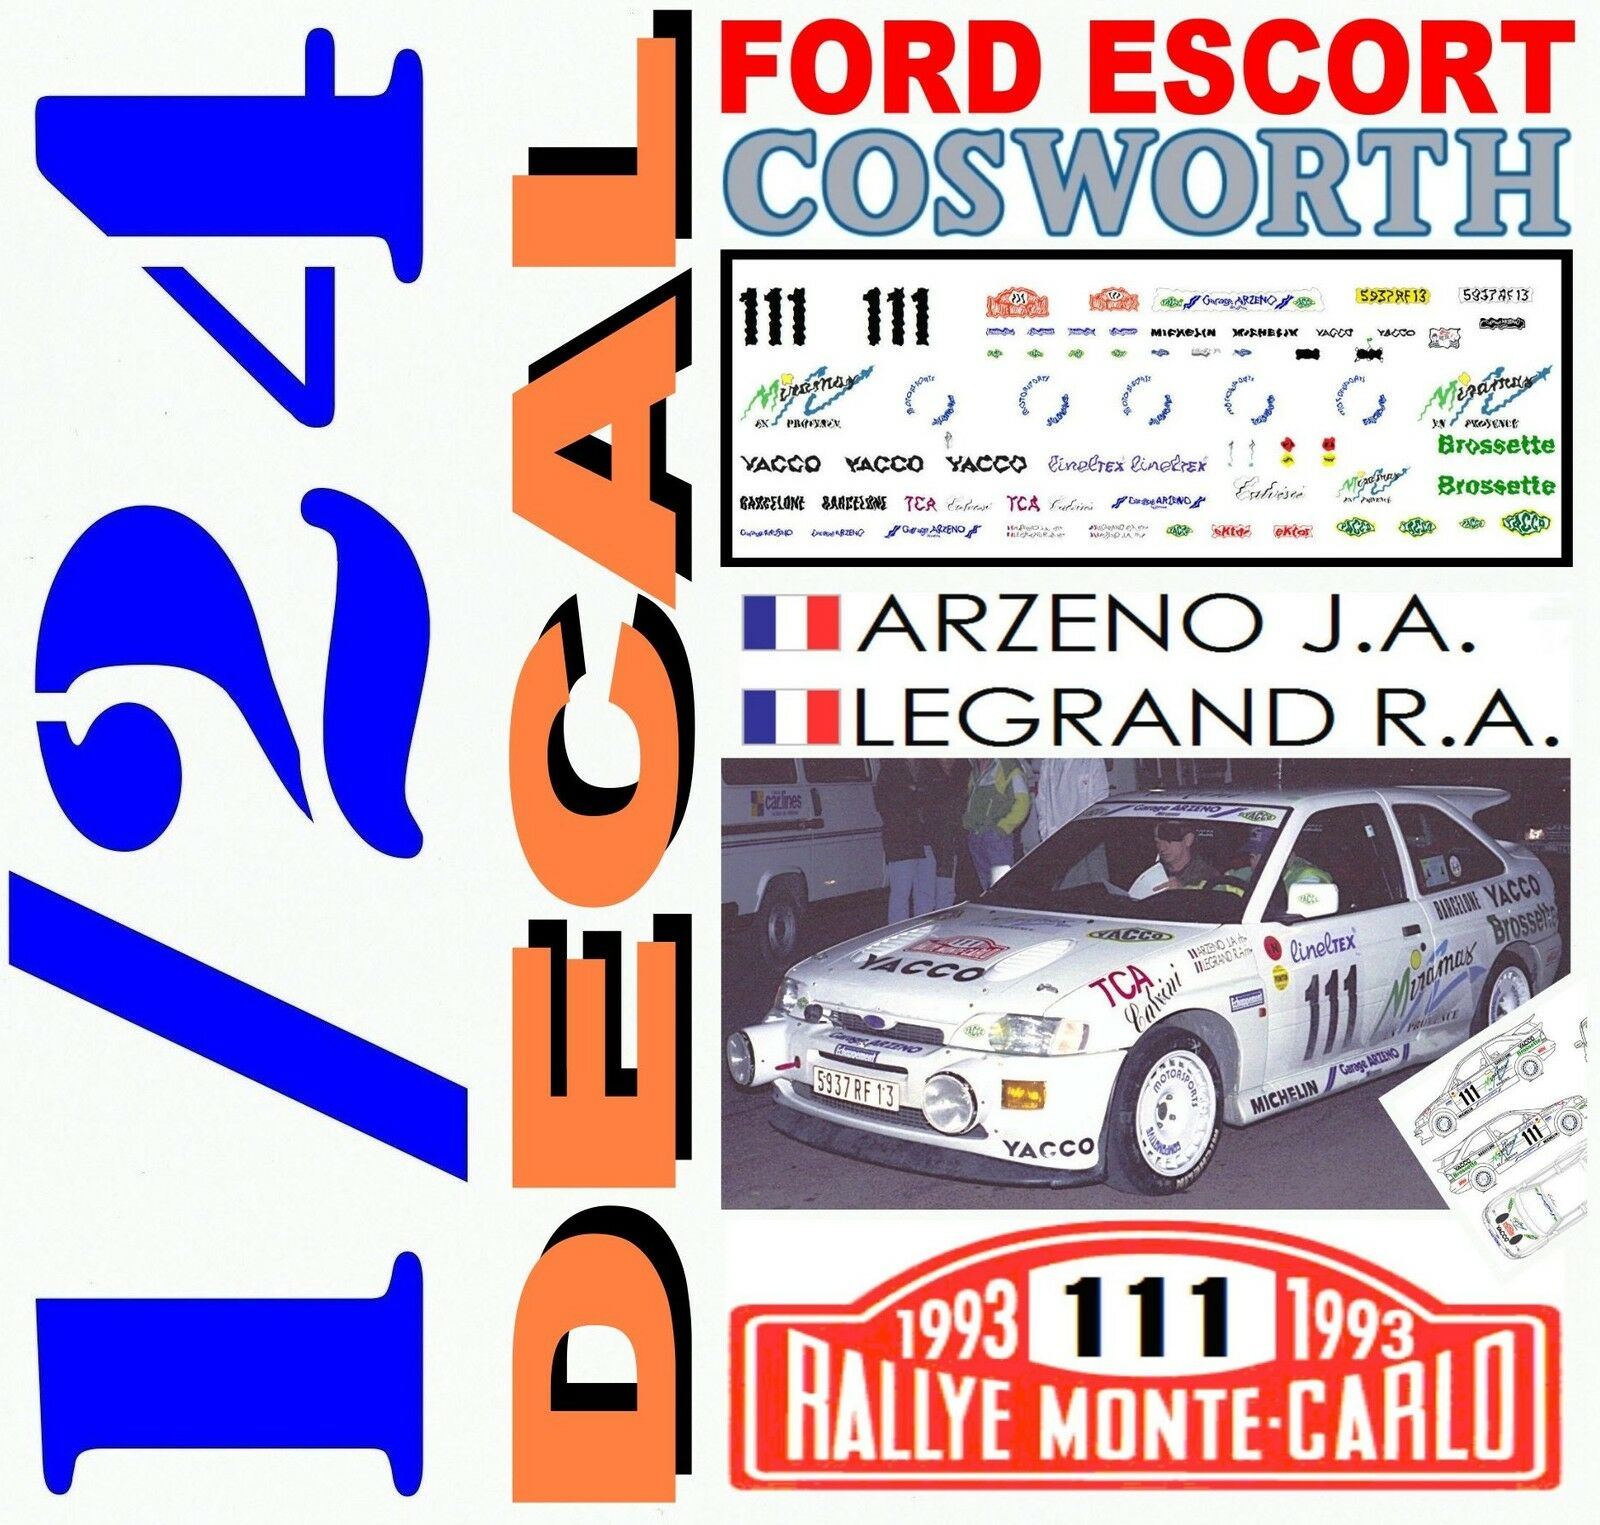 DECAL KIT 1 24 FORD ESCORT COSWORTH JACQUES ARZENO ARZENO ARZENO RALLYE MONTECARLO 1993 (06) 938e02